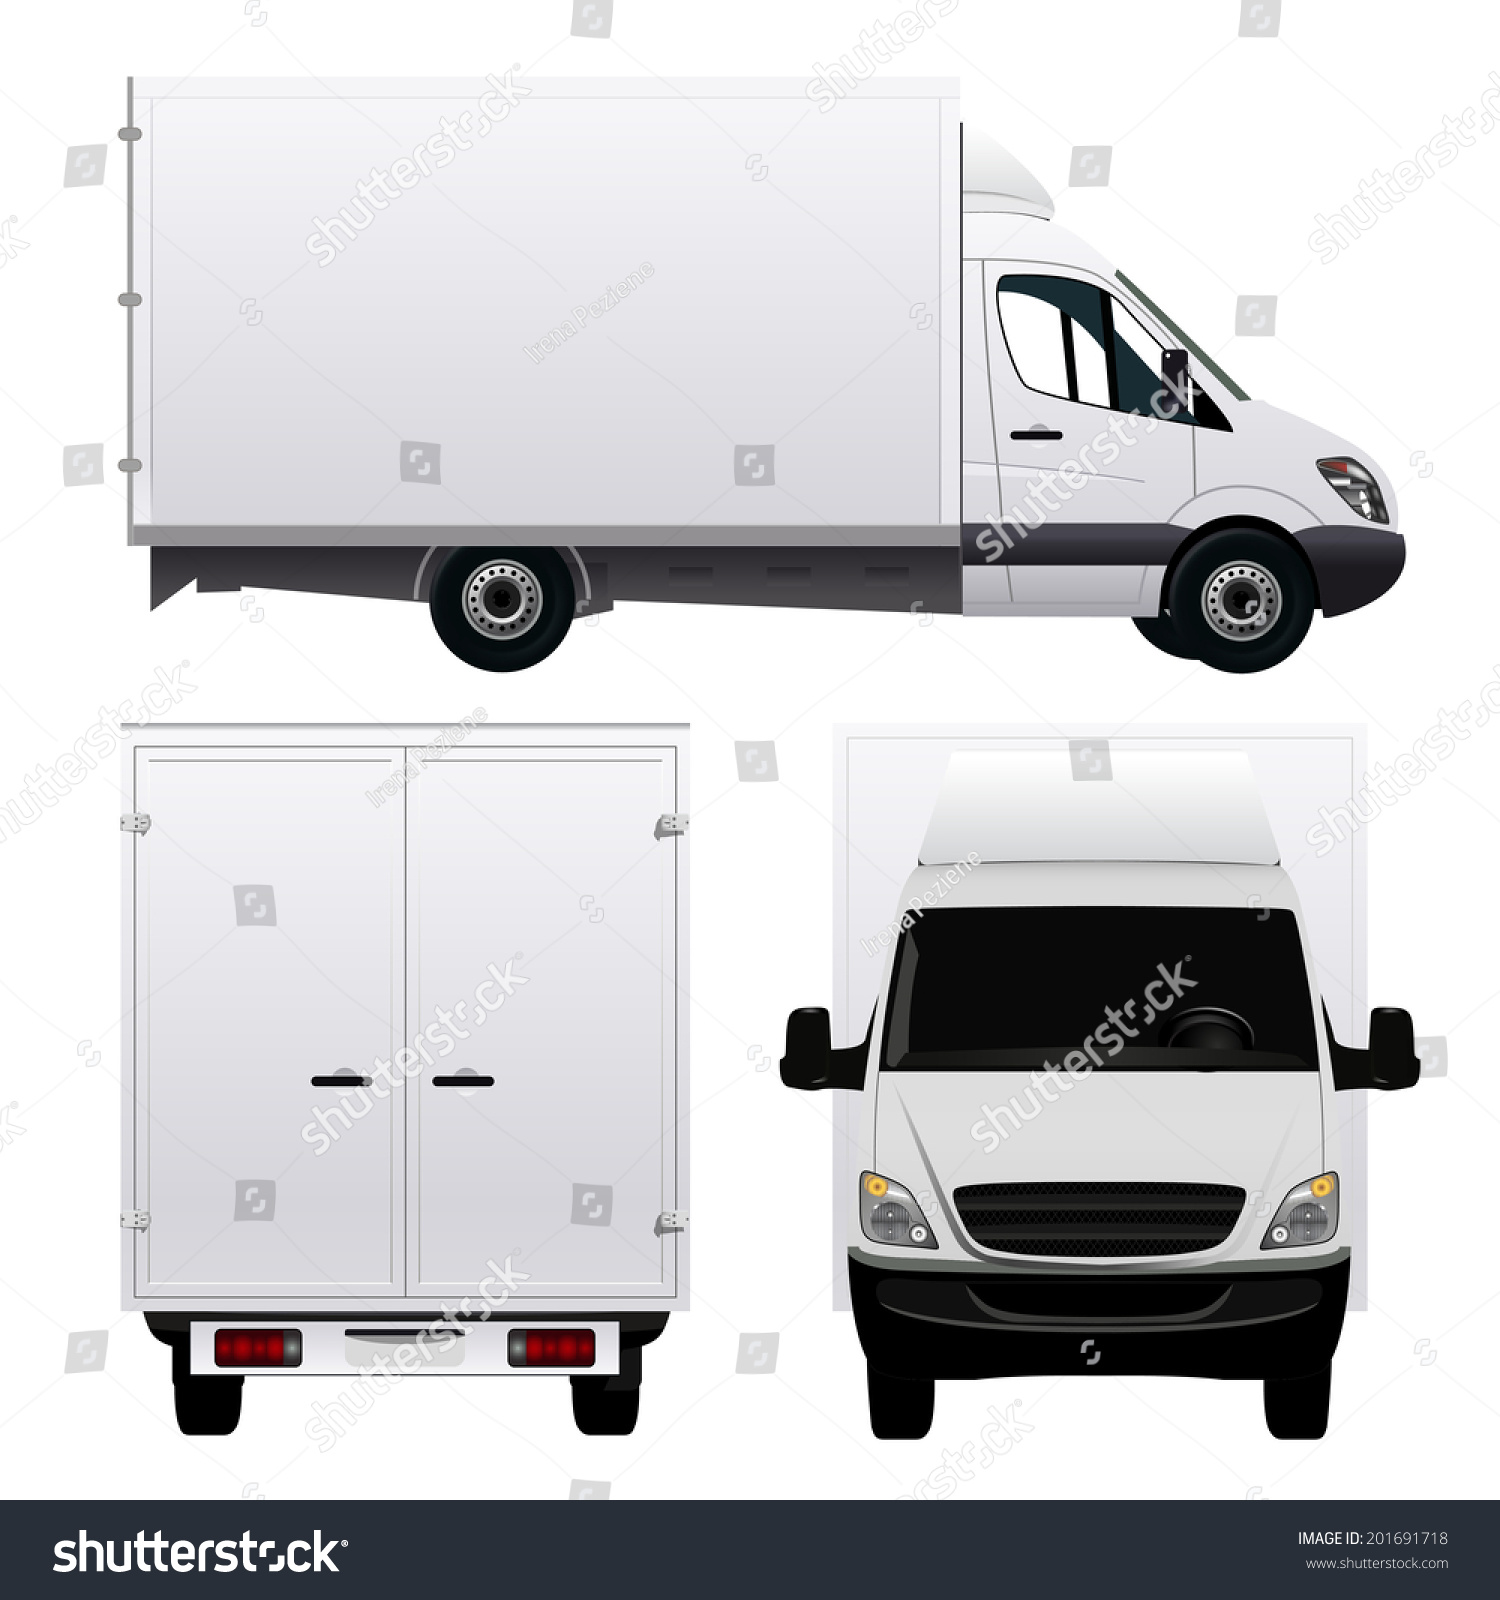 Delivery Van Stock Vector 201691718 : Shutterstock